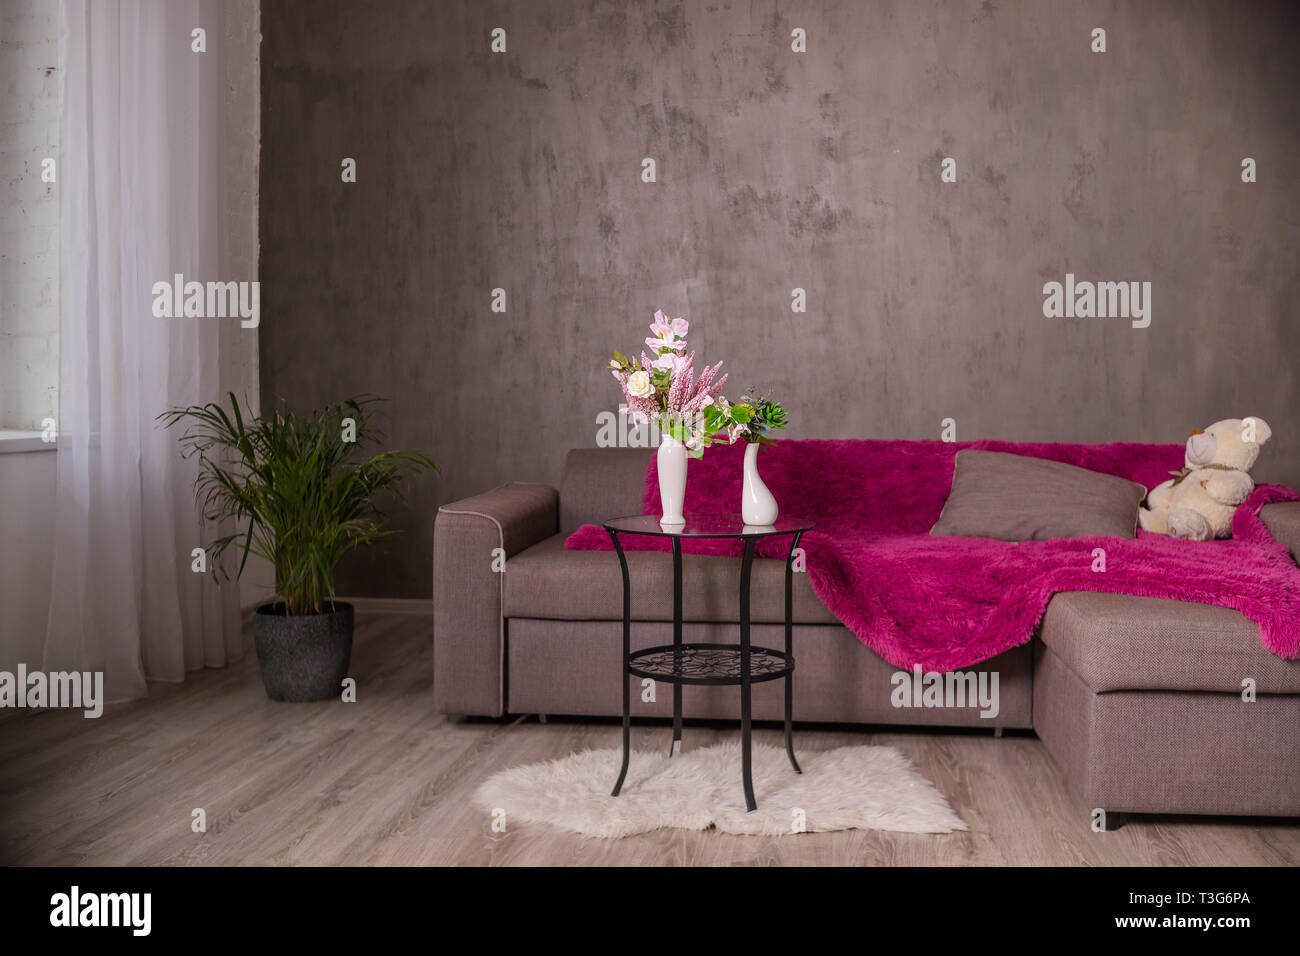 Scandinavian Living room design interior with sofa and round table with flowers bouquet.Braun sofa with plaid, pillows, teddy bear.Modern interior Stock Photo